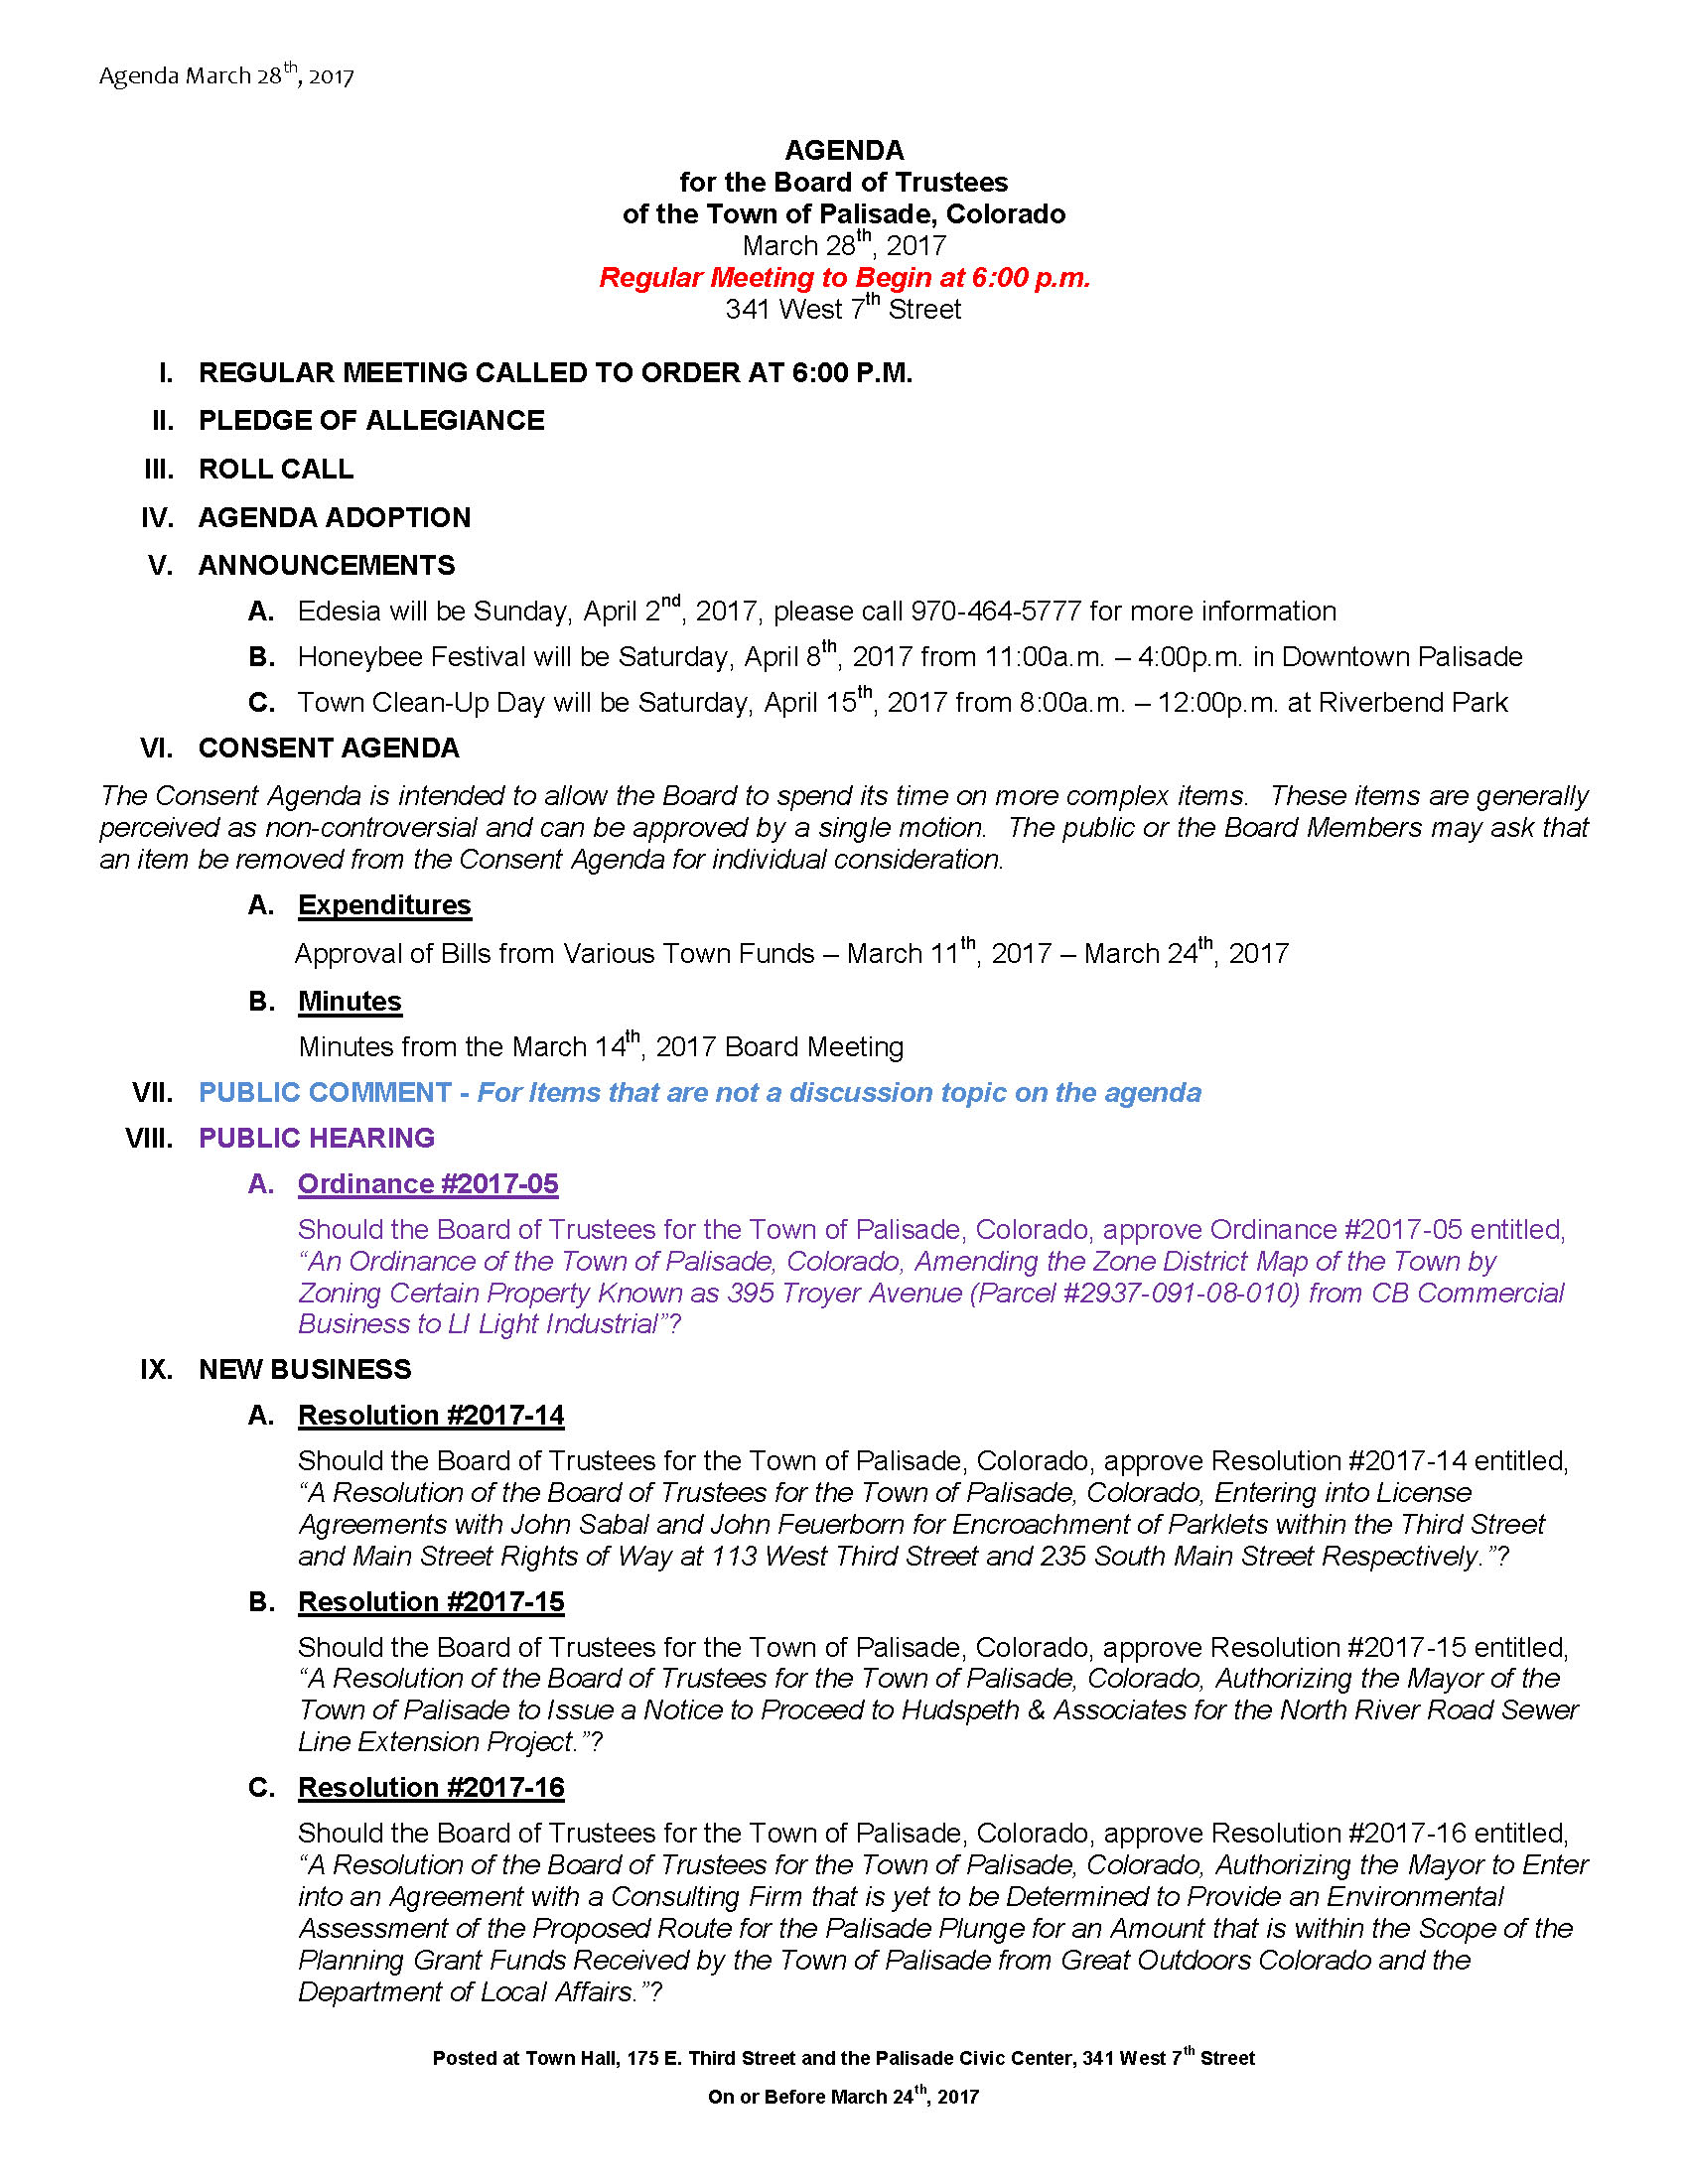 March 28th 2017 Board Meeting Agenda Page 1